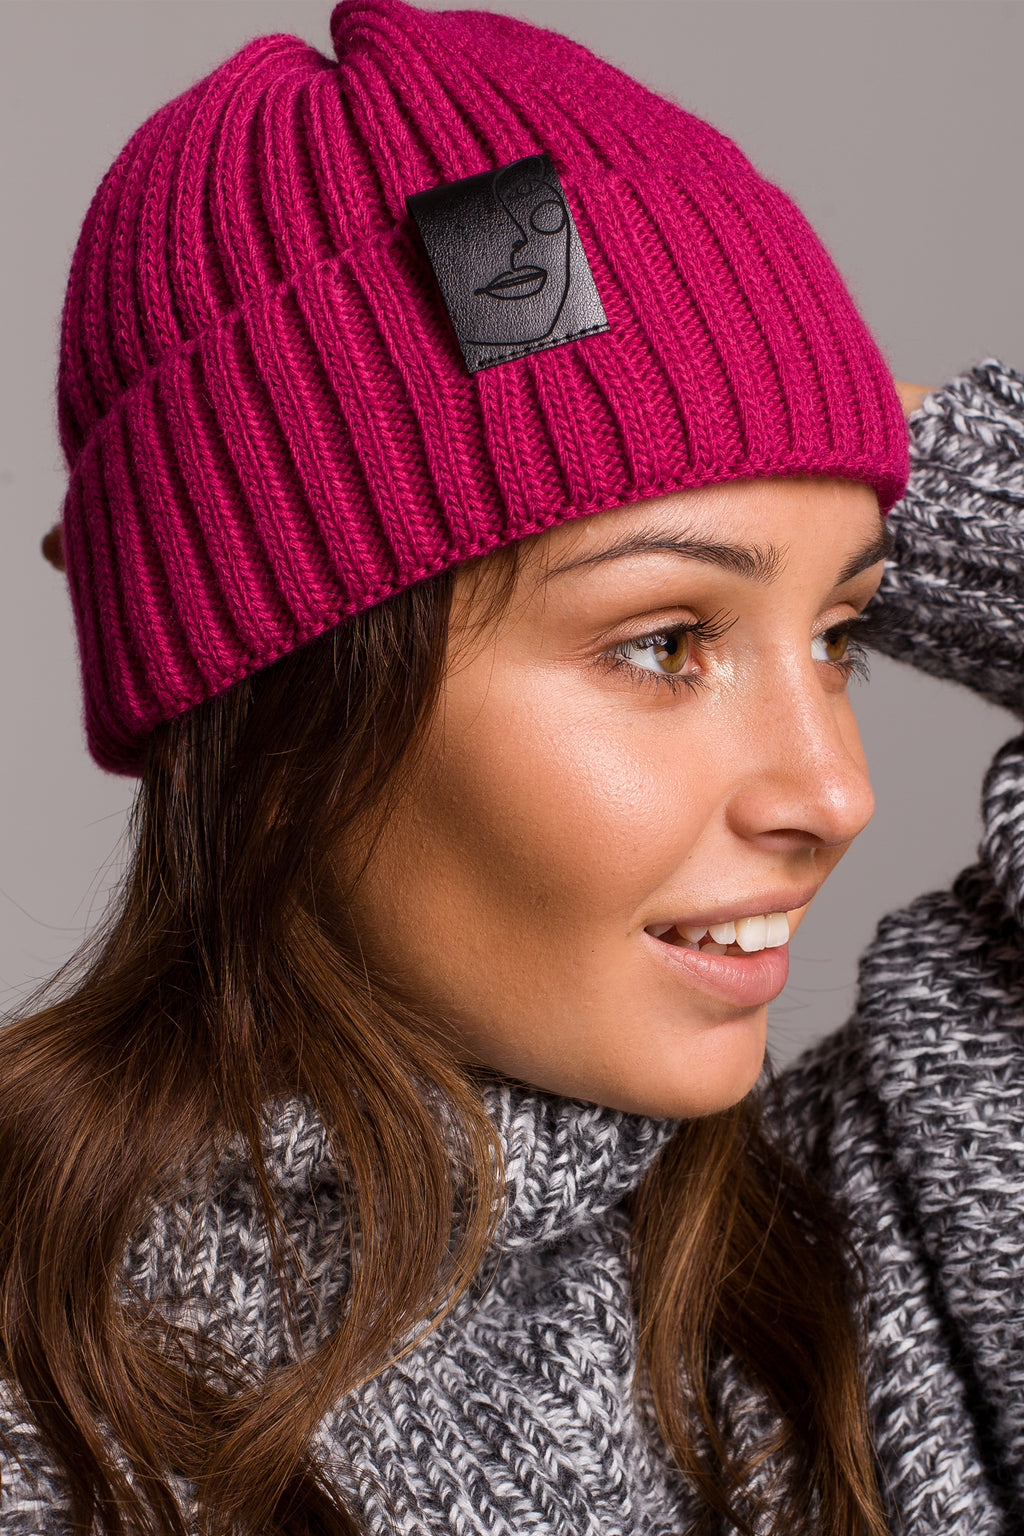 Raspberry Knit Ribbed Beanie With A Faux Leather Badge - So Chic Boutique